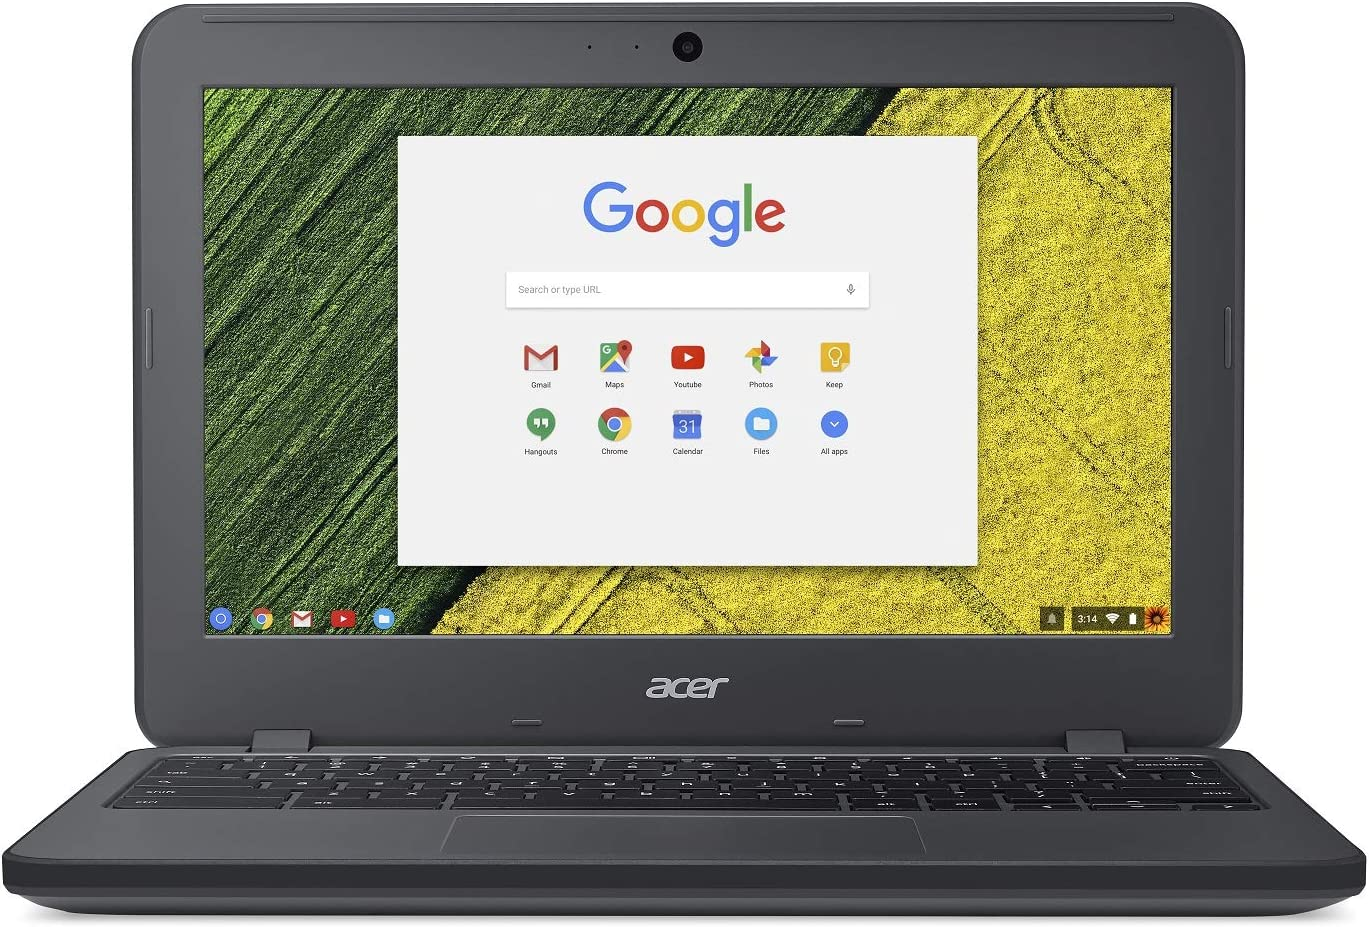 "Acer Chromebook 11 N7, Celeron N3060, 11.6"" HD, 4GB LPDDR3, 32GB eMMC, Google Chrome, C731-C118"